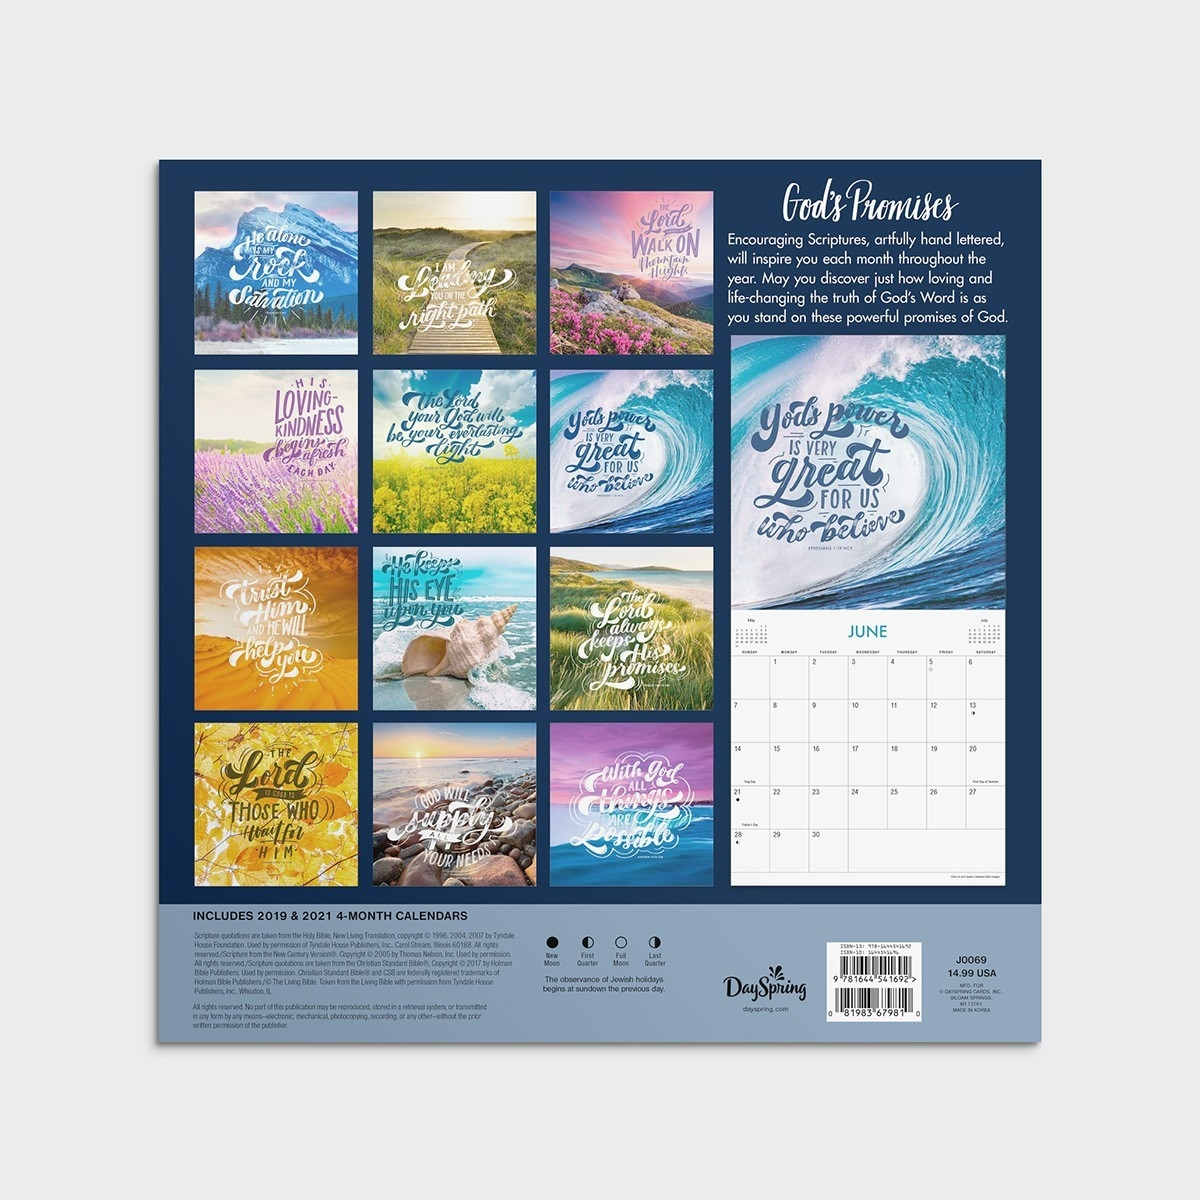 God's Promises - 2020 Wall Calendar  2020 Christian Advent Calendar With Scripture